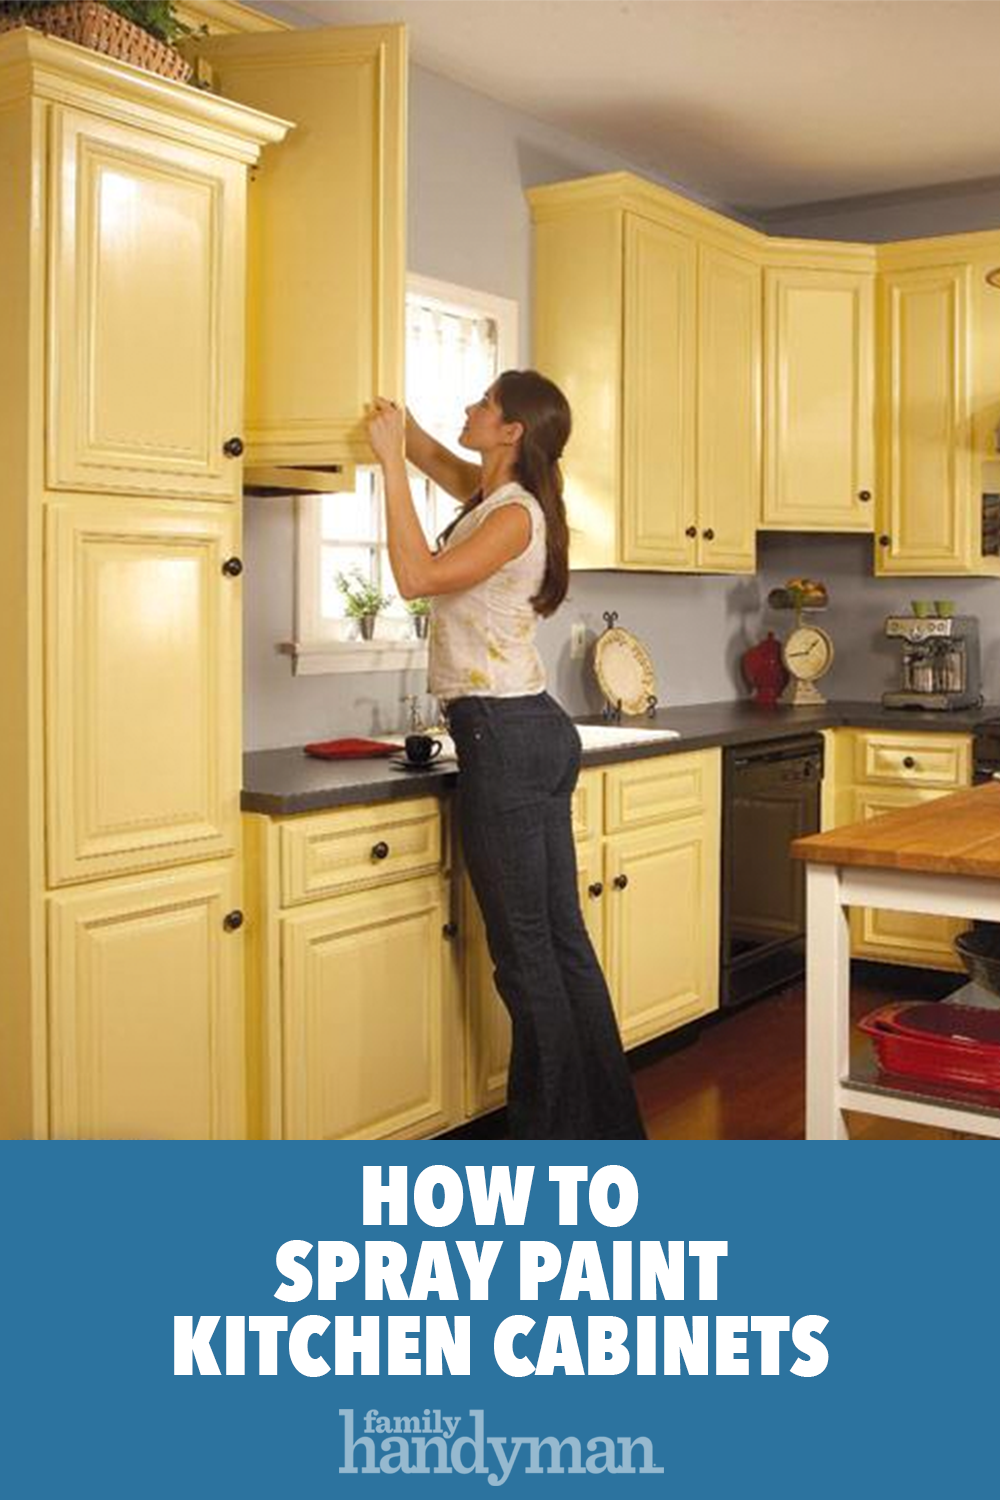 How To Spray Paint Kitchen Cabinets Spray Paint Kitchen Cabinets Repainting Kitchen Cabinets Painting Kitchen Cabinets